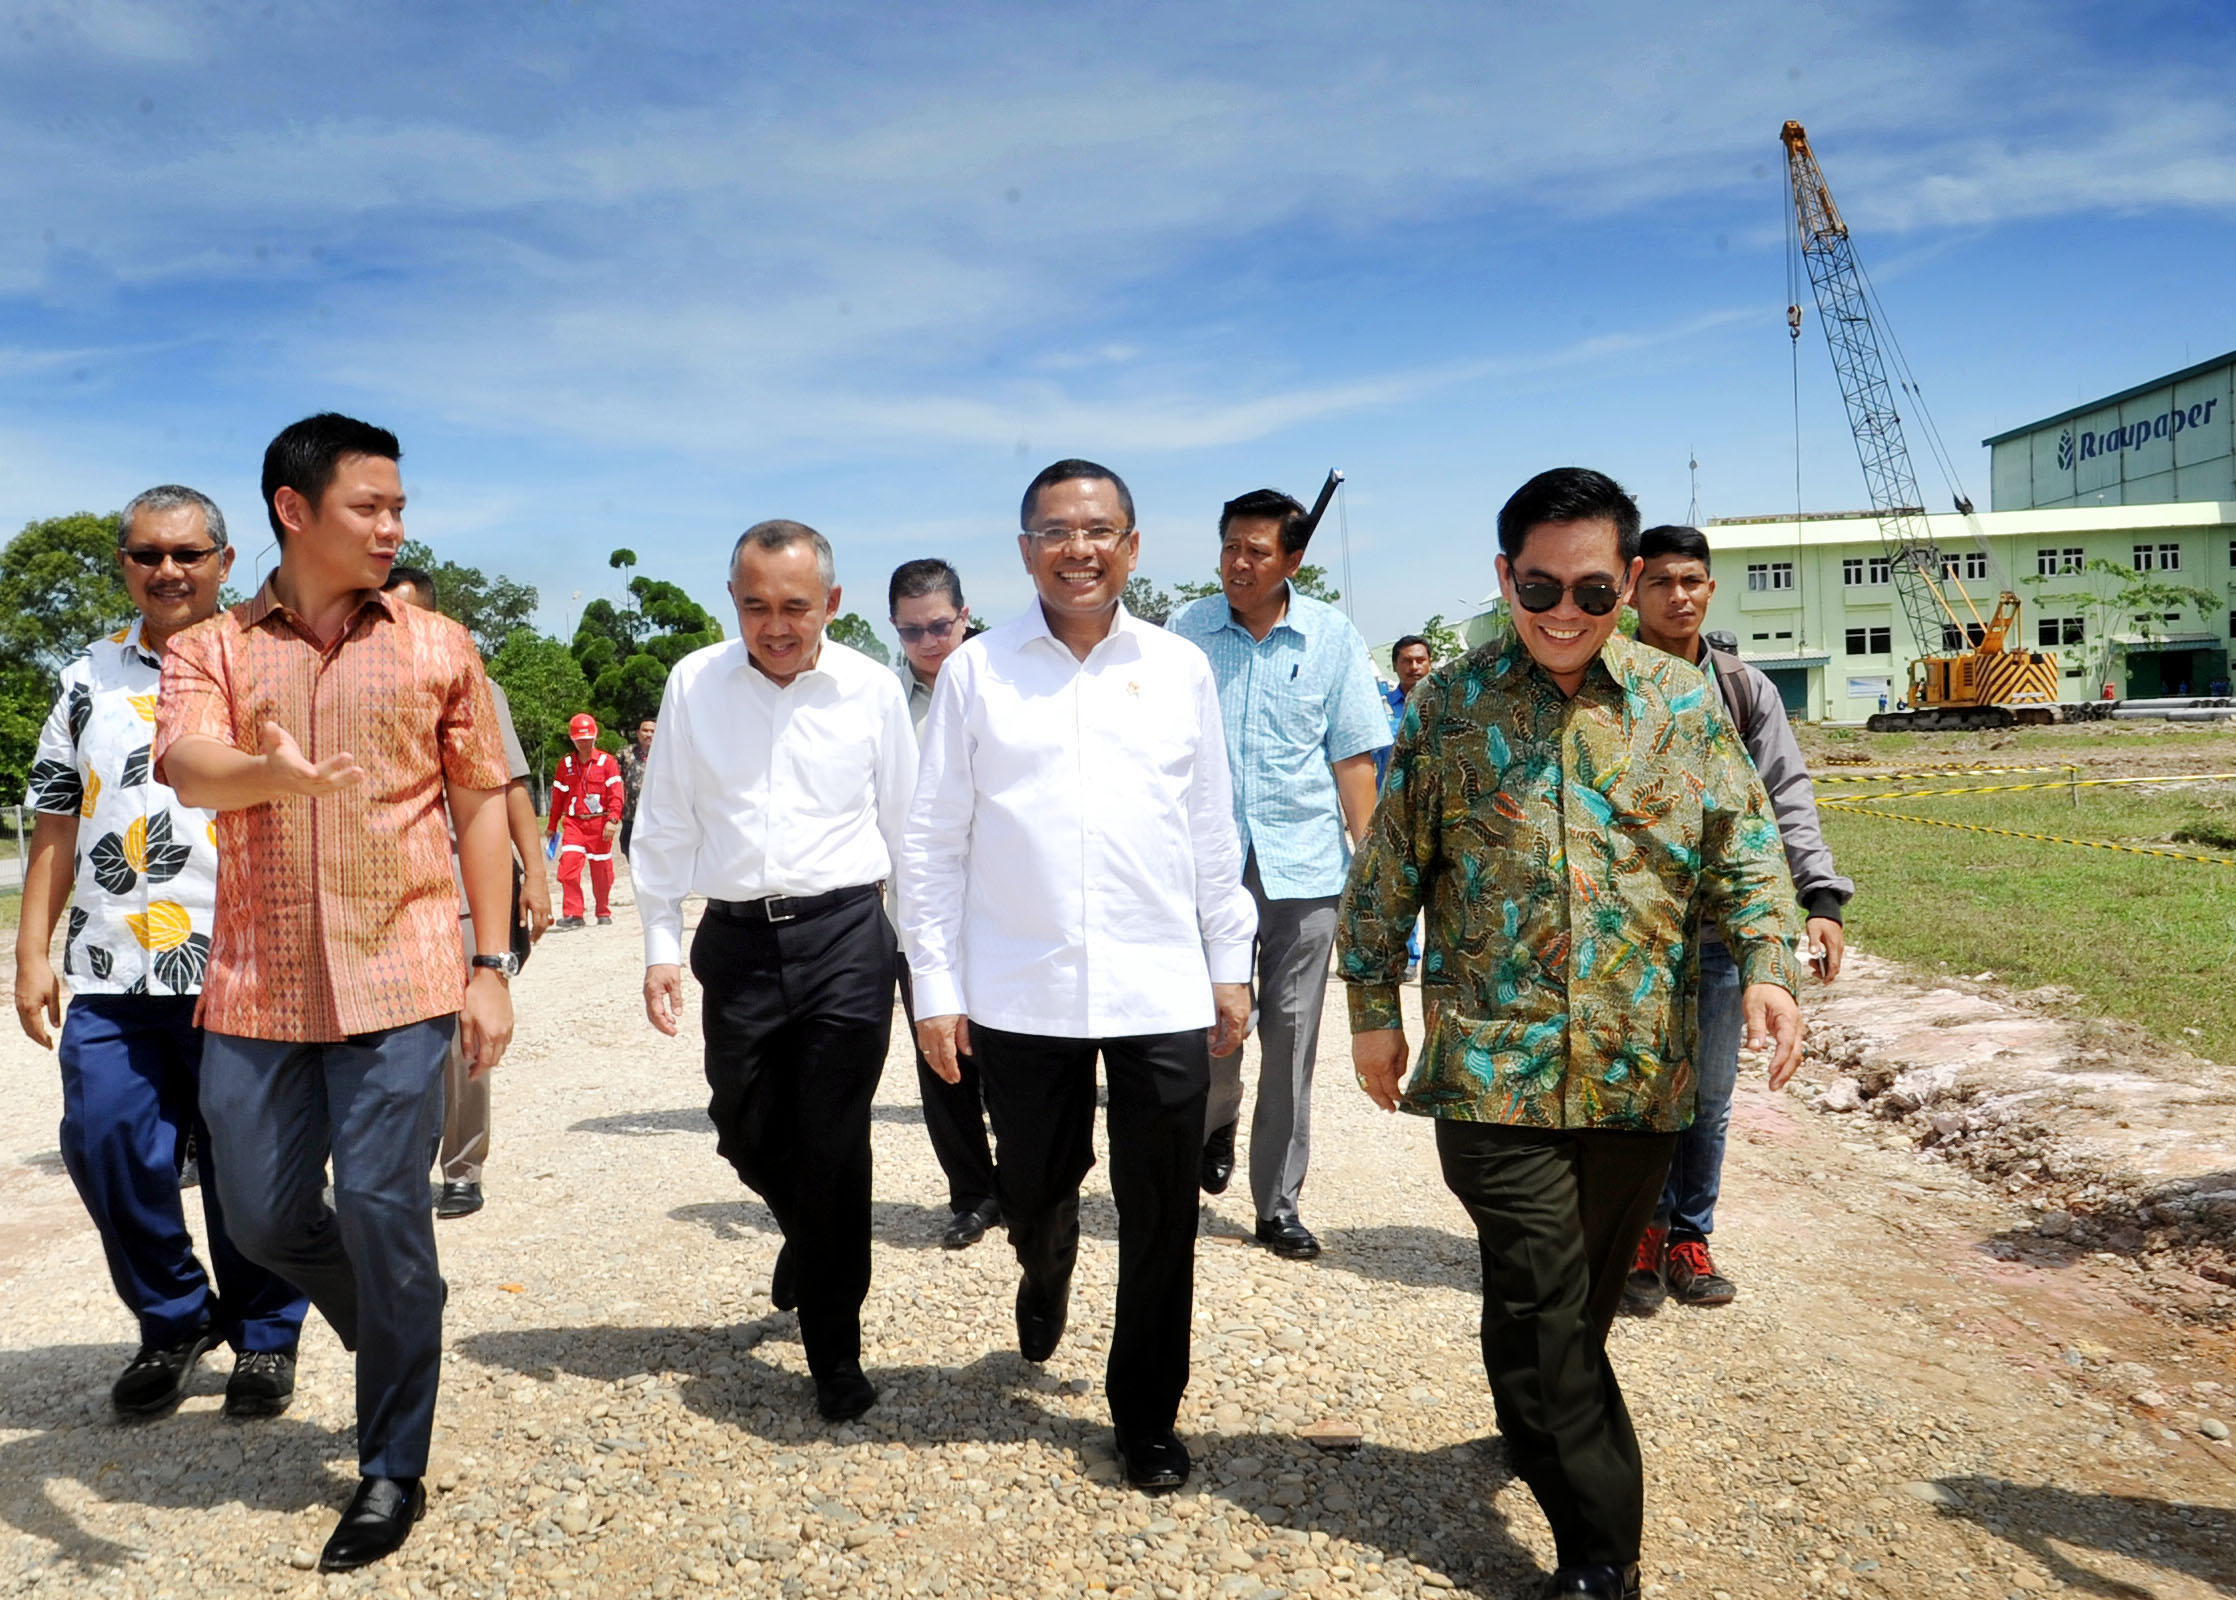 Industry Minister Saleh Husin (centre) walks with RGE Director Anderson Tanoto through APRIL Group's paper mill facilities in Pangkalan Kerinci. (Image source: The Jakarta Globe)